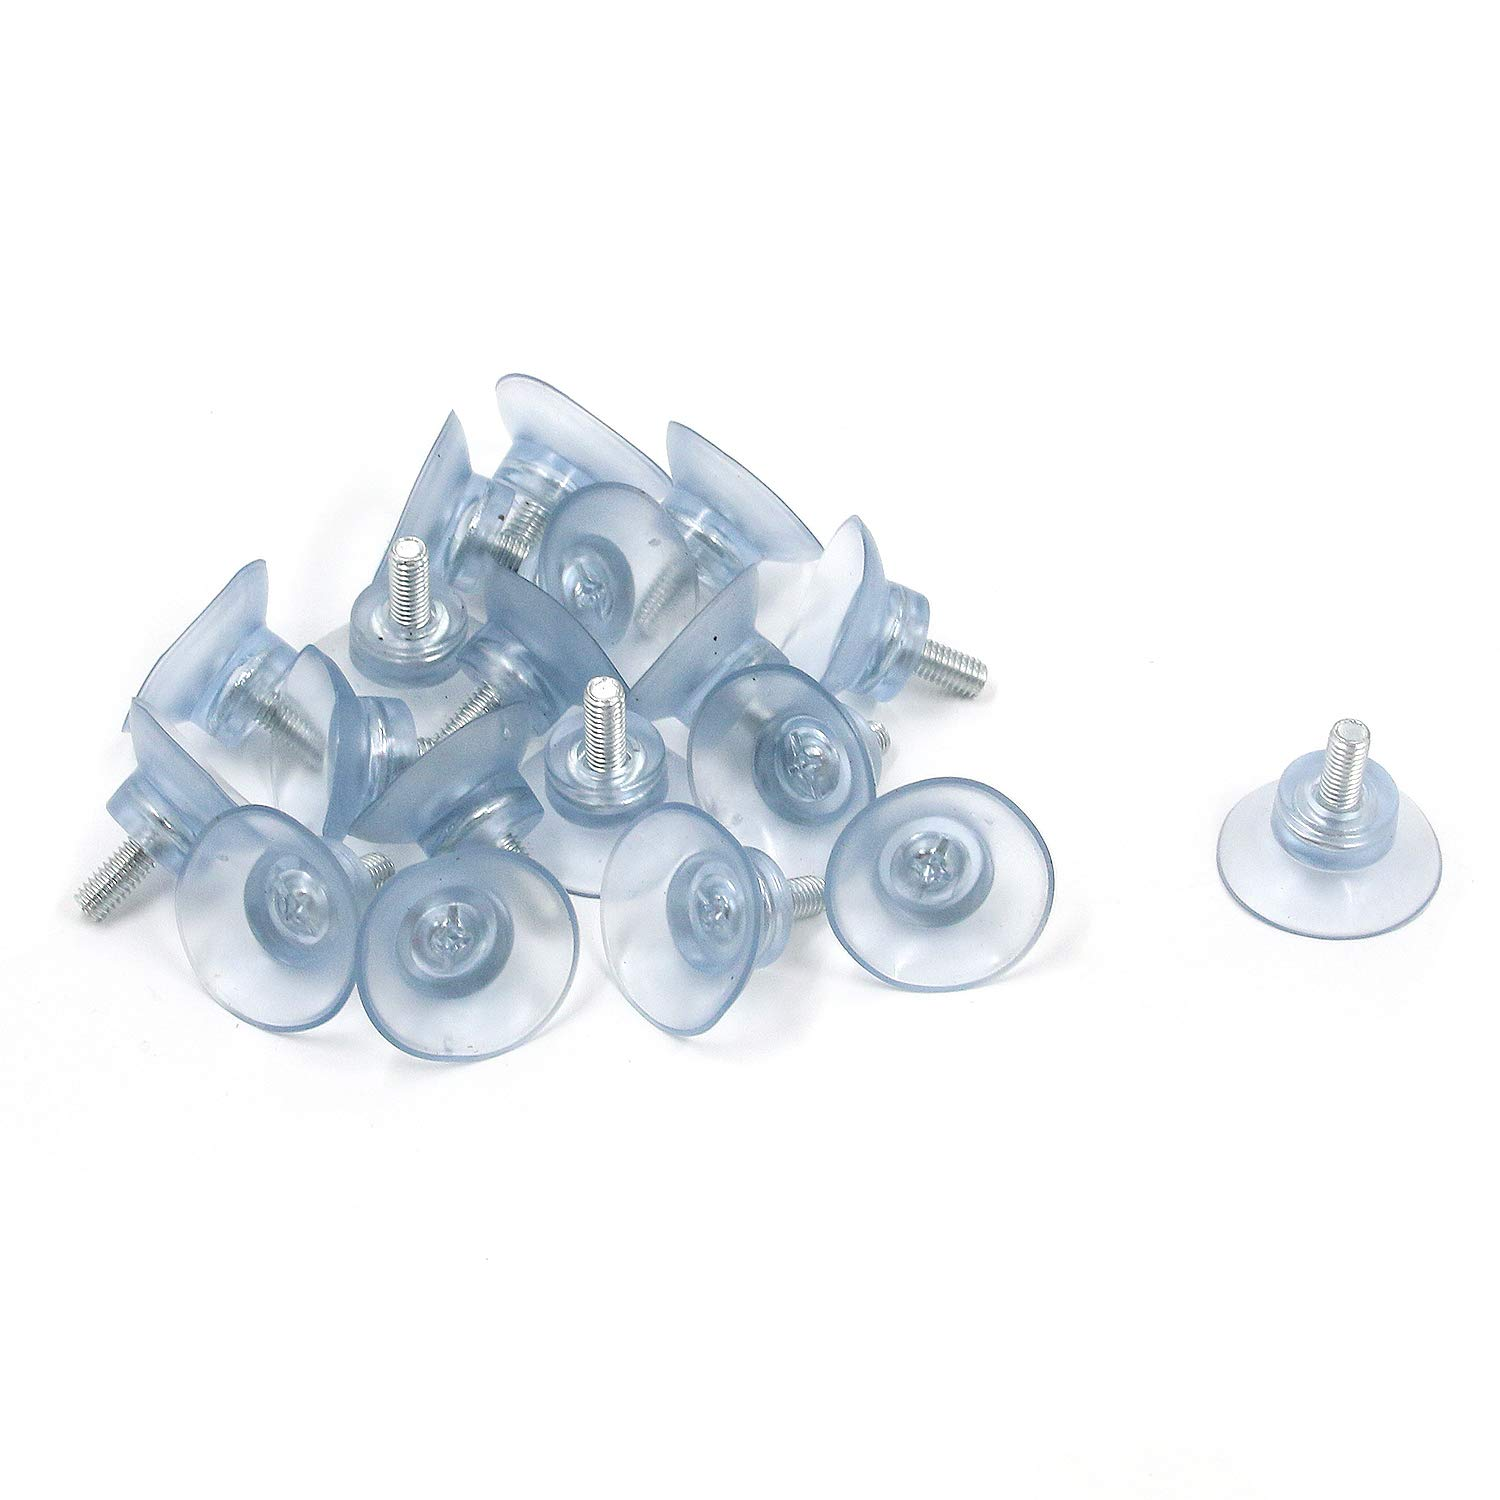 MTMTOOL 1.2 Diameter Rubber Strong Suction Cup with M6 Screw for Glass Table Top Pack of 20